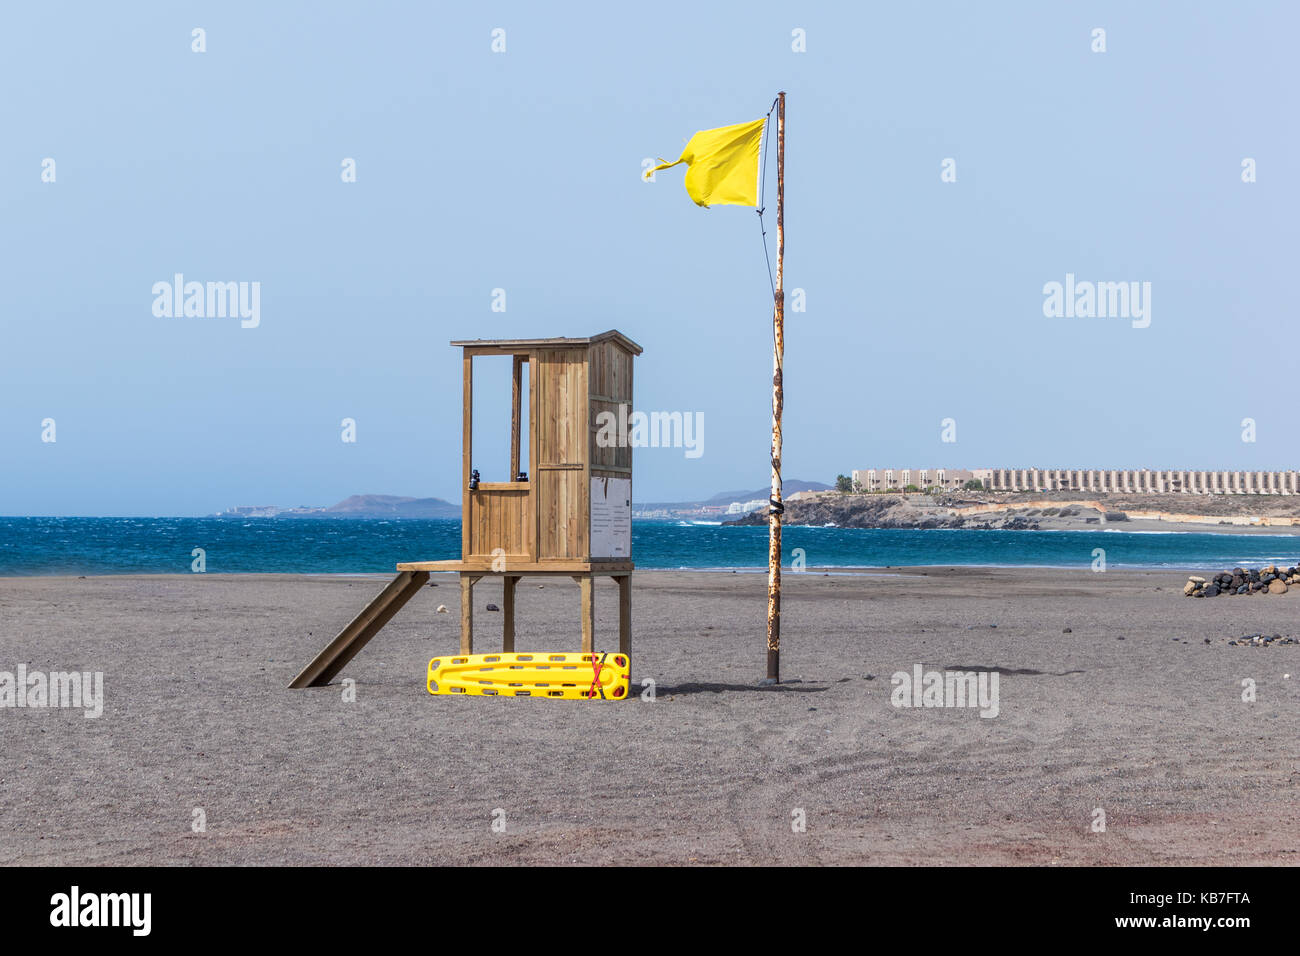 2777032b9cb9 Lonely lifeguard hut with yellow rescue tube on a sandy beach in Tenerife.  Blue sea